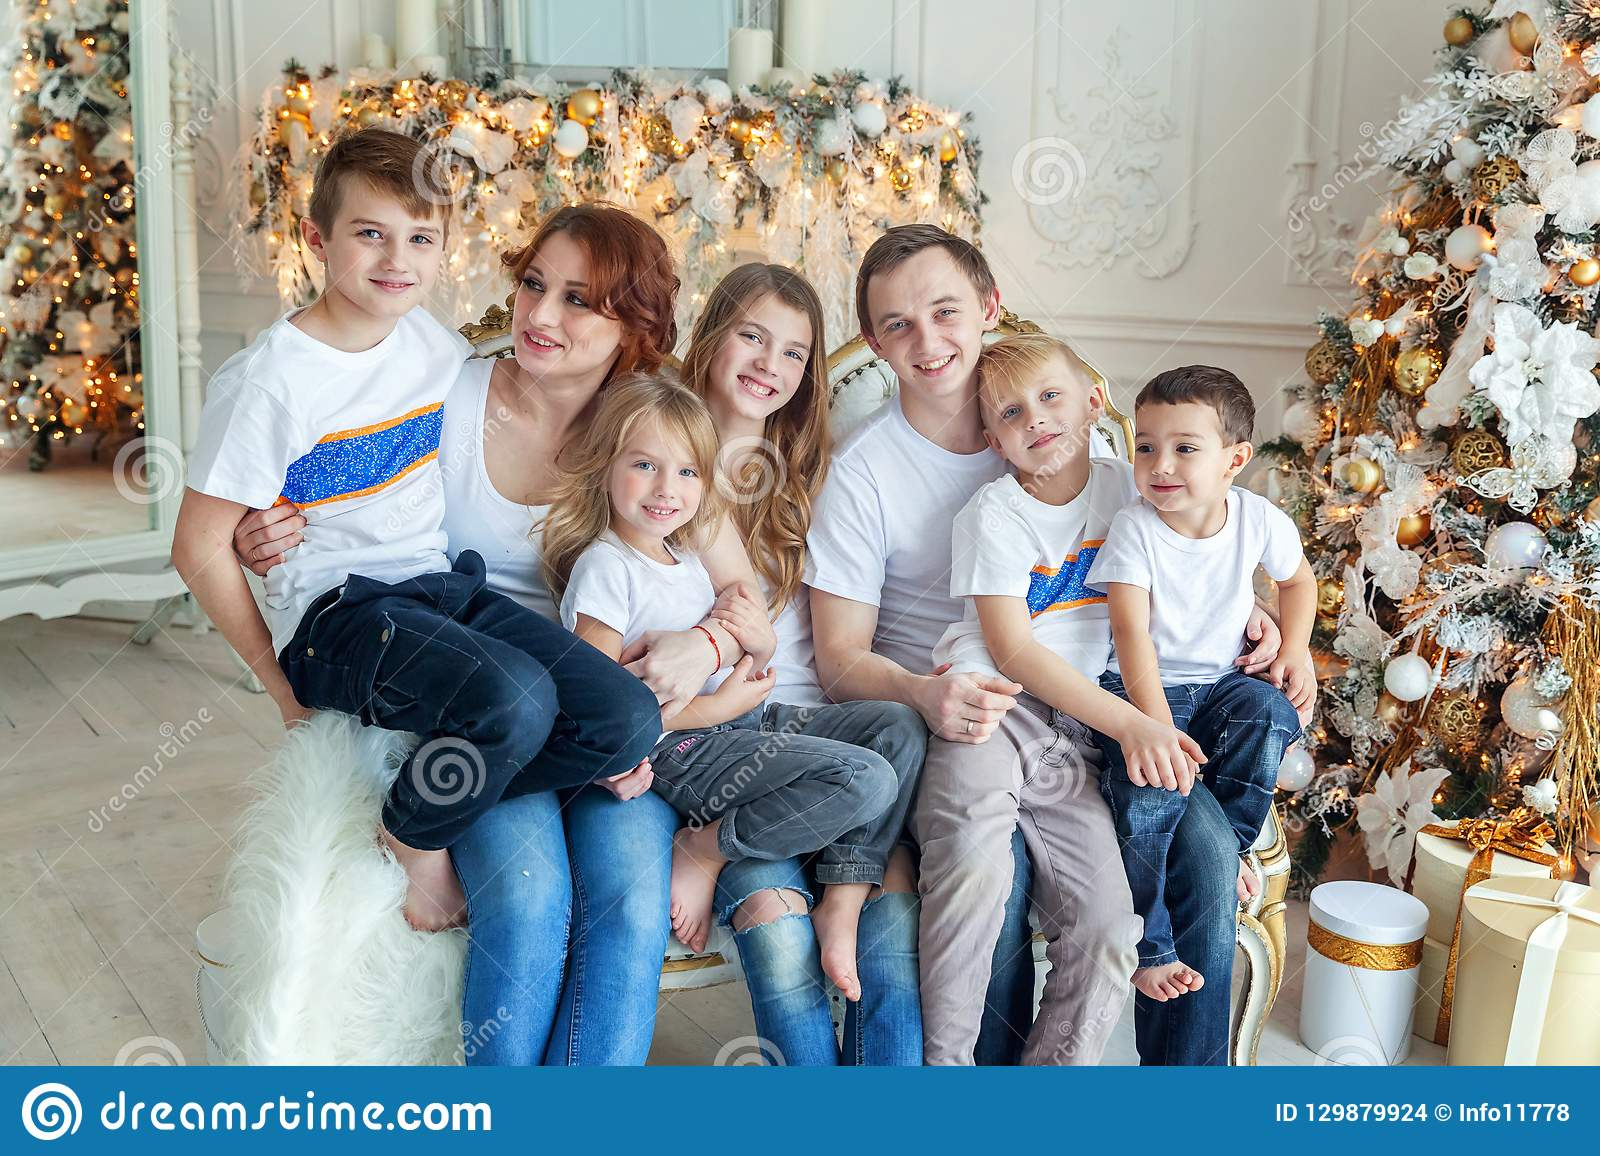 Mother father and five children near Christmas tree at home